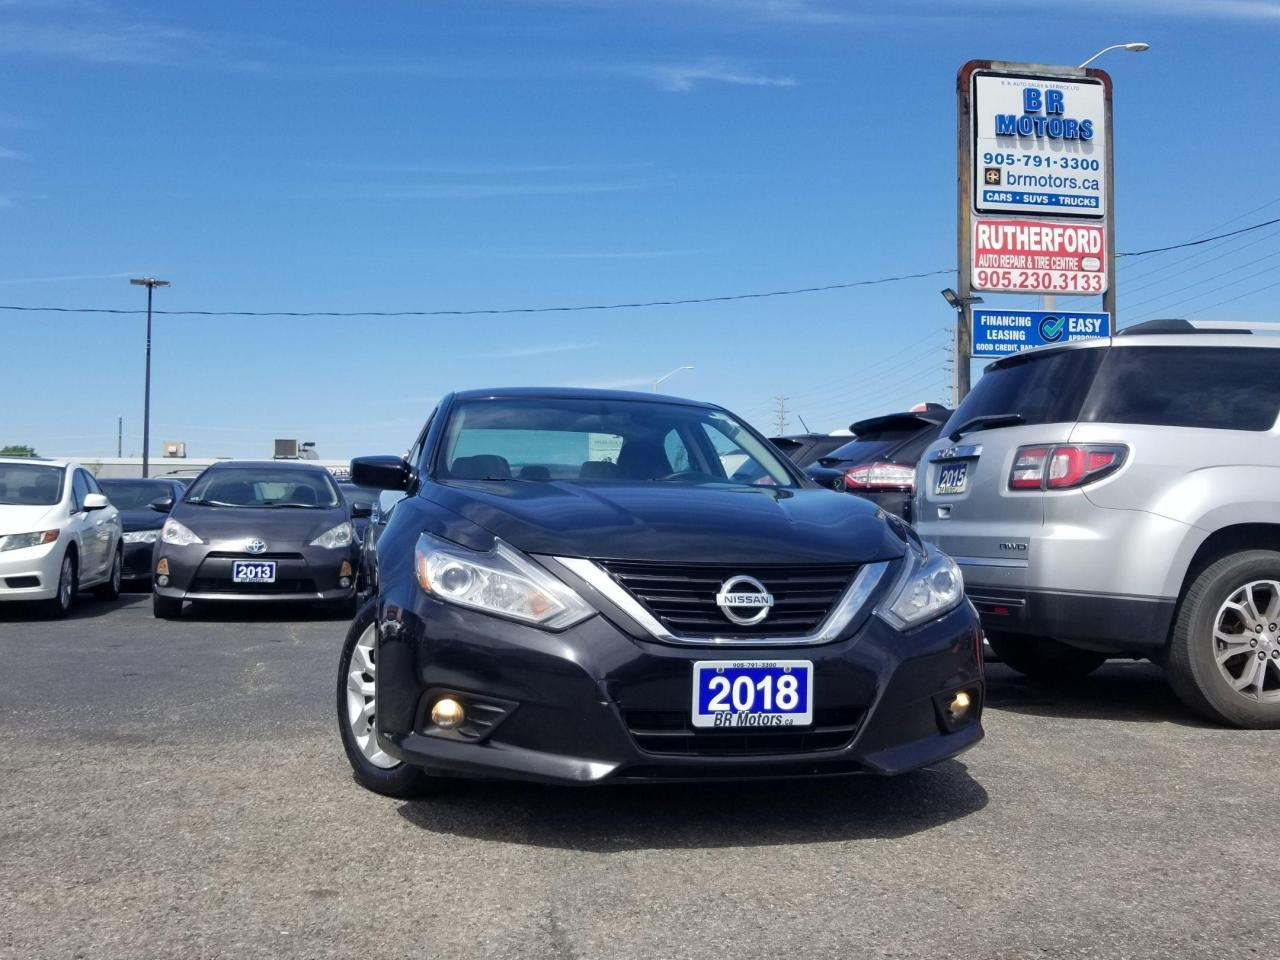 used 2018 nissan altima 2.5 s auto air camera no accidents for sale in brampton, ontario carpages.ca